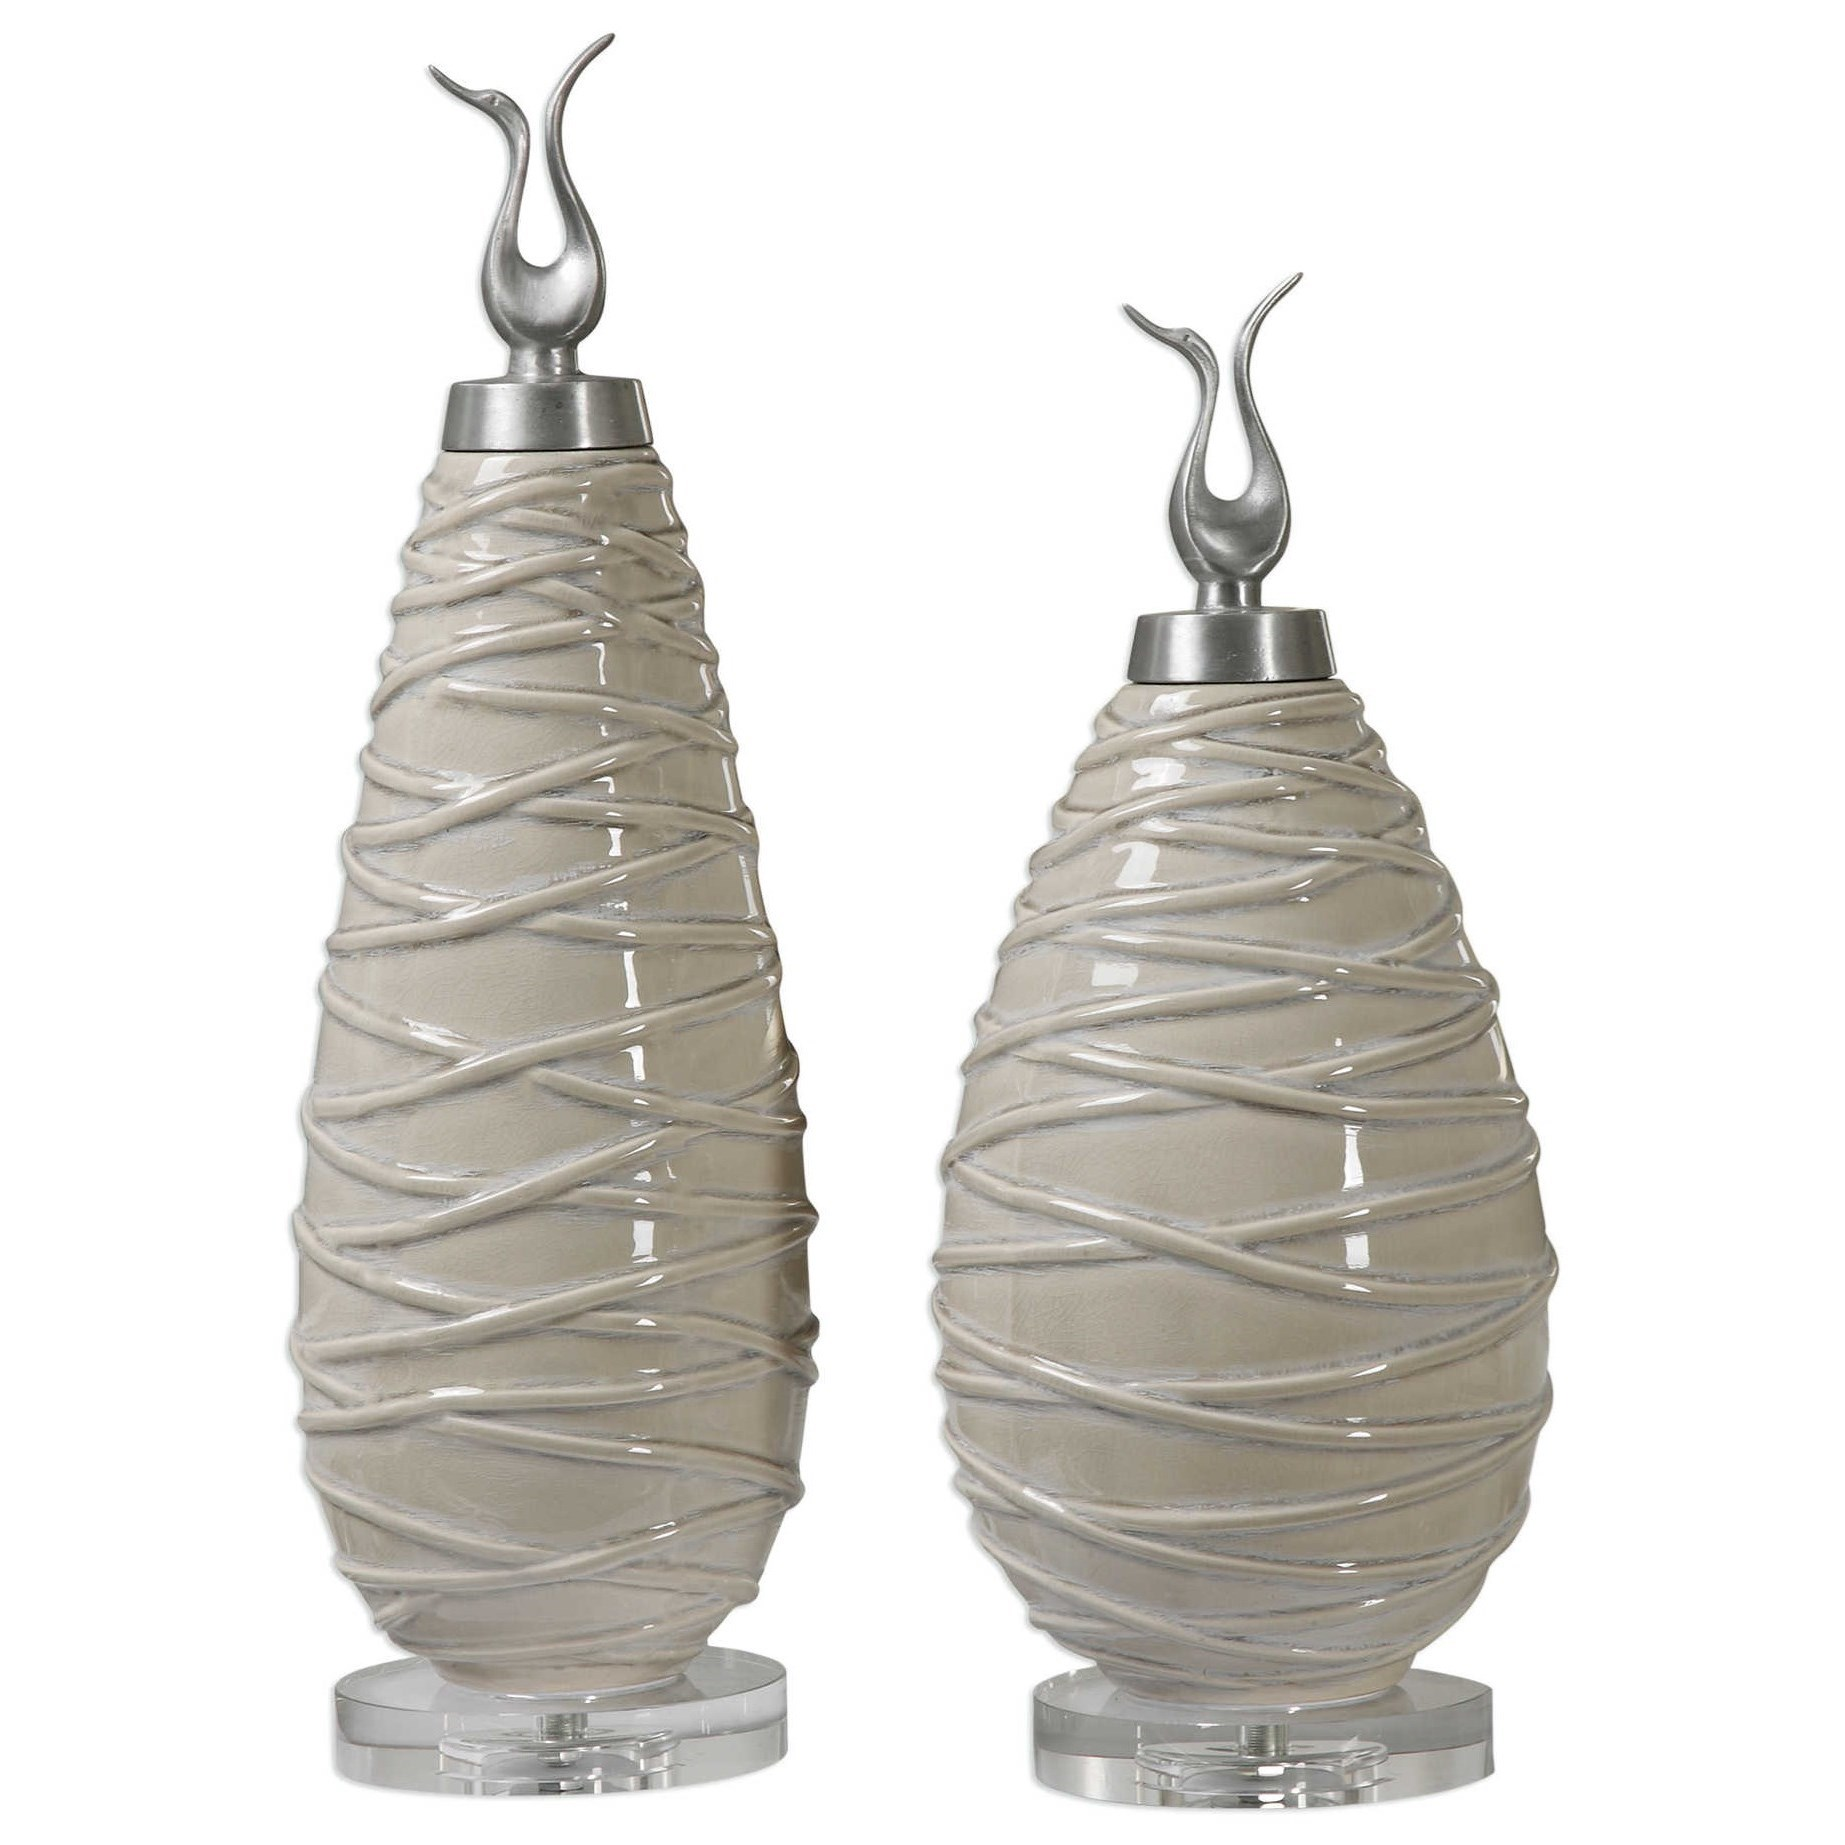 Accessories Romeo Crackled Light Gray Finials Set of 2 by Uttermost at Upper Room Home Furnishings